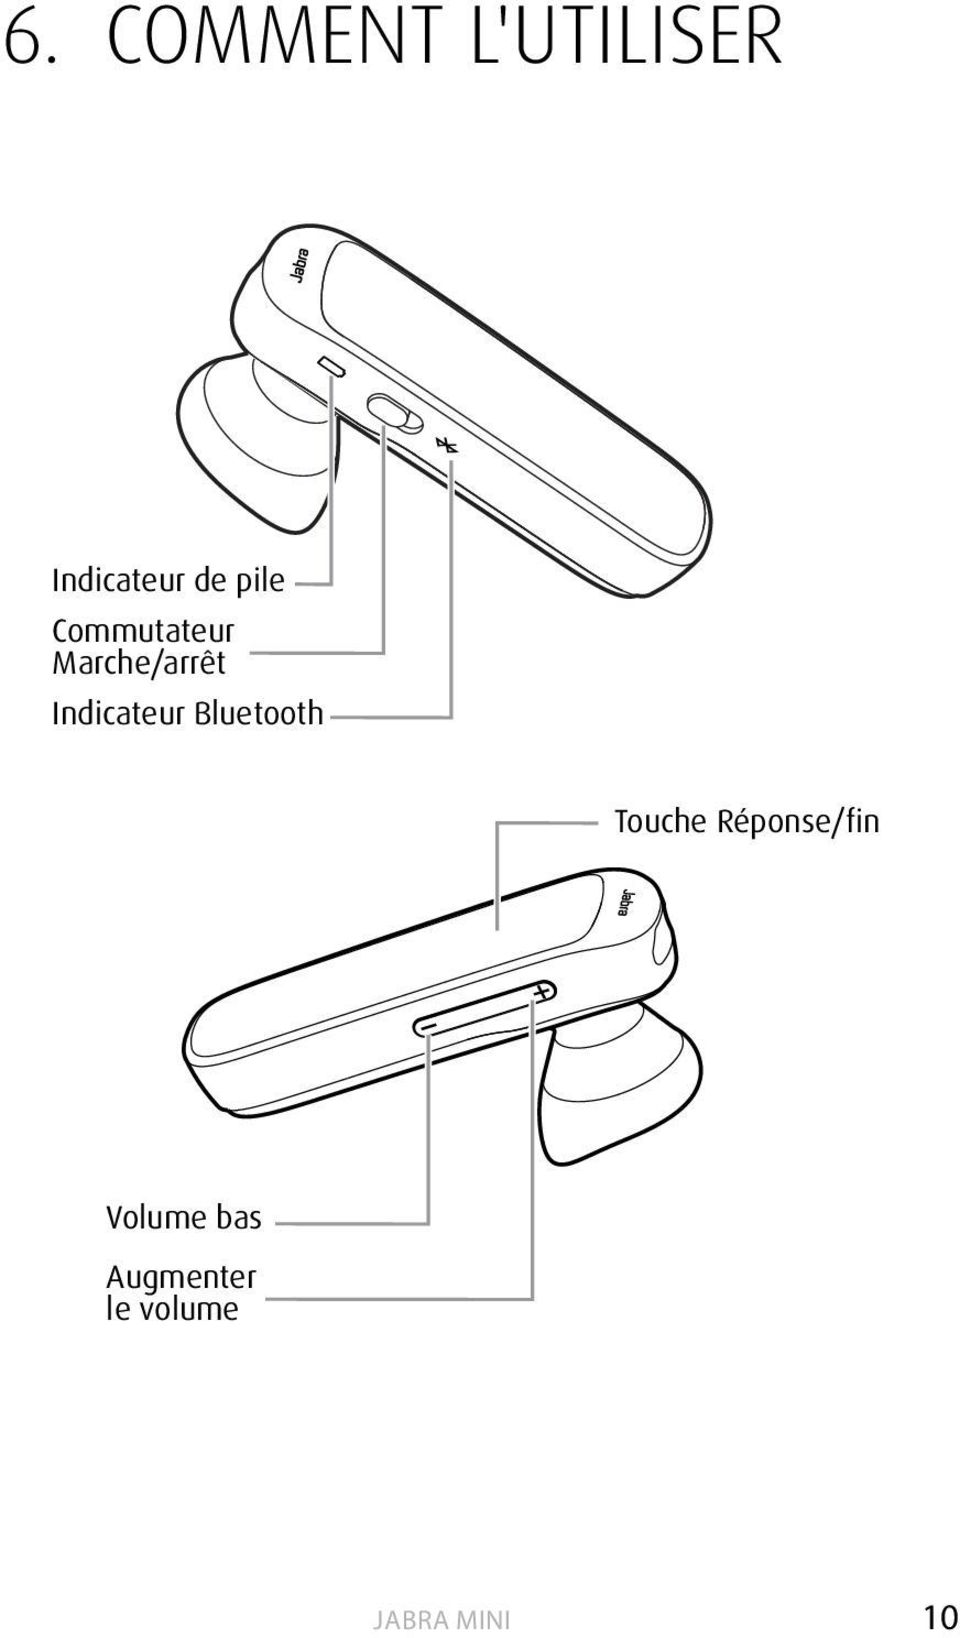 Indicateur Bluetooth Touche